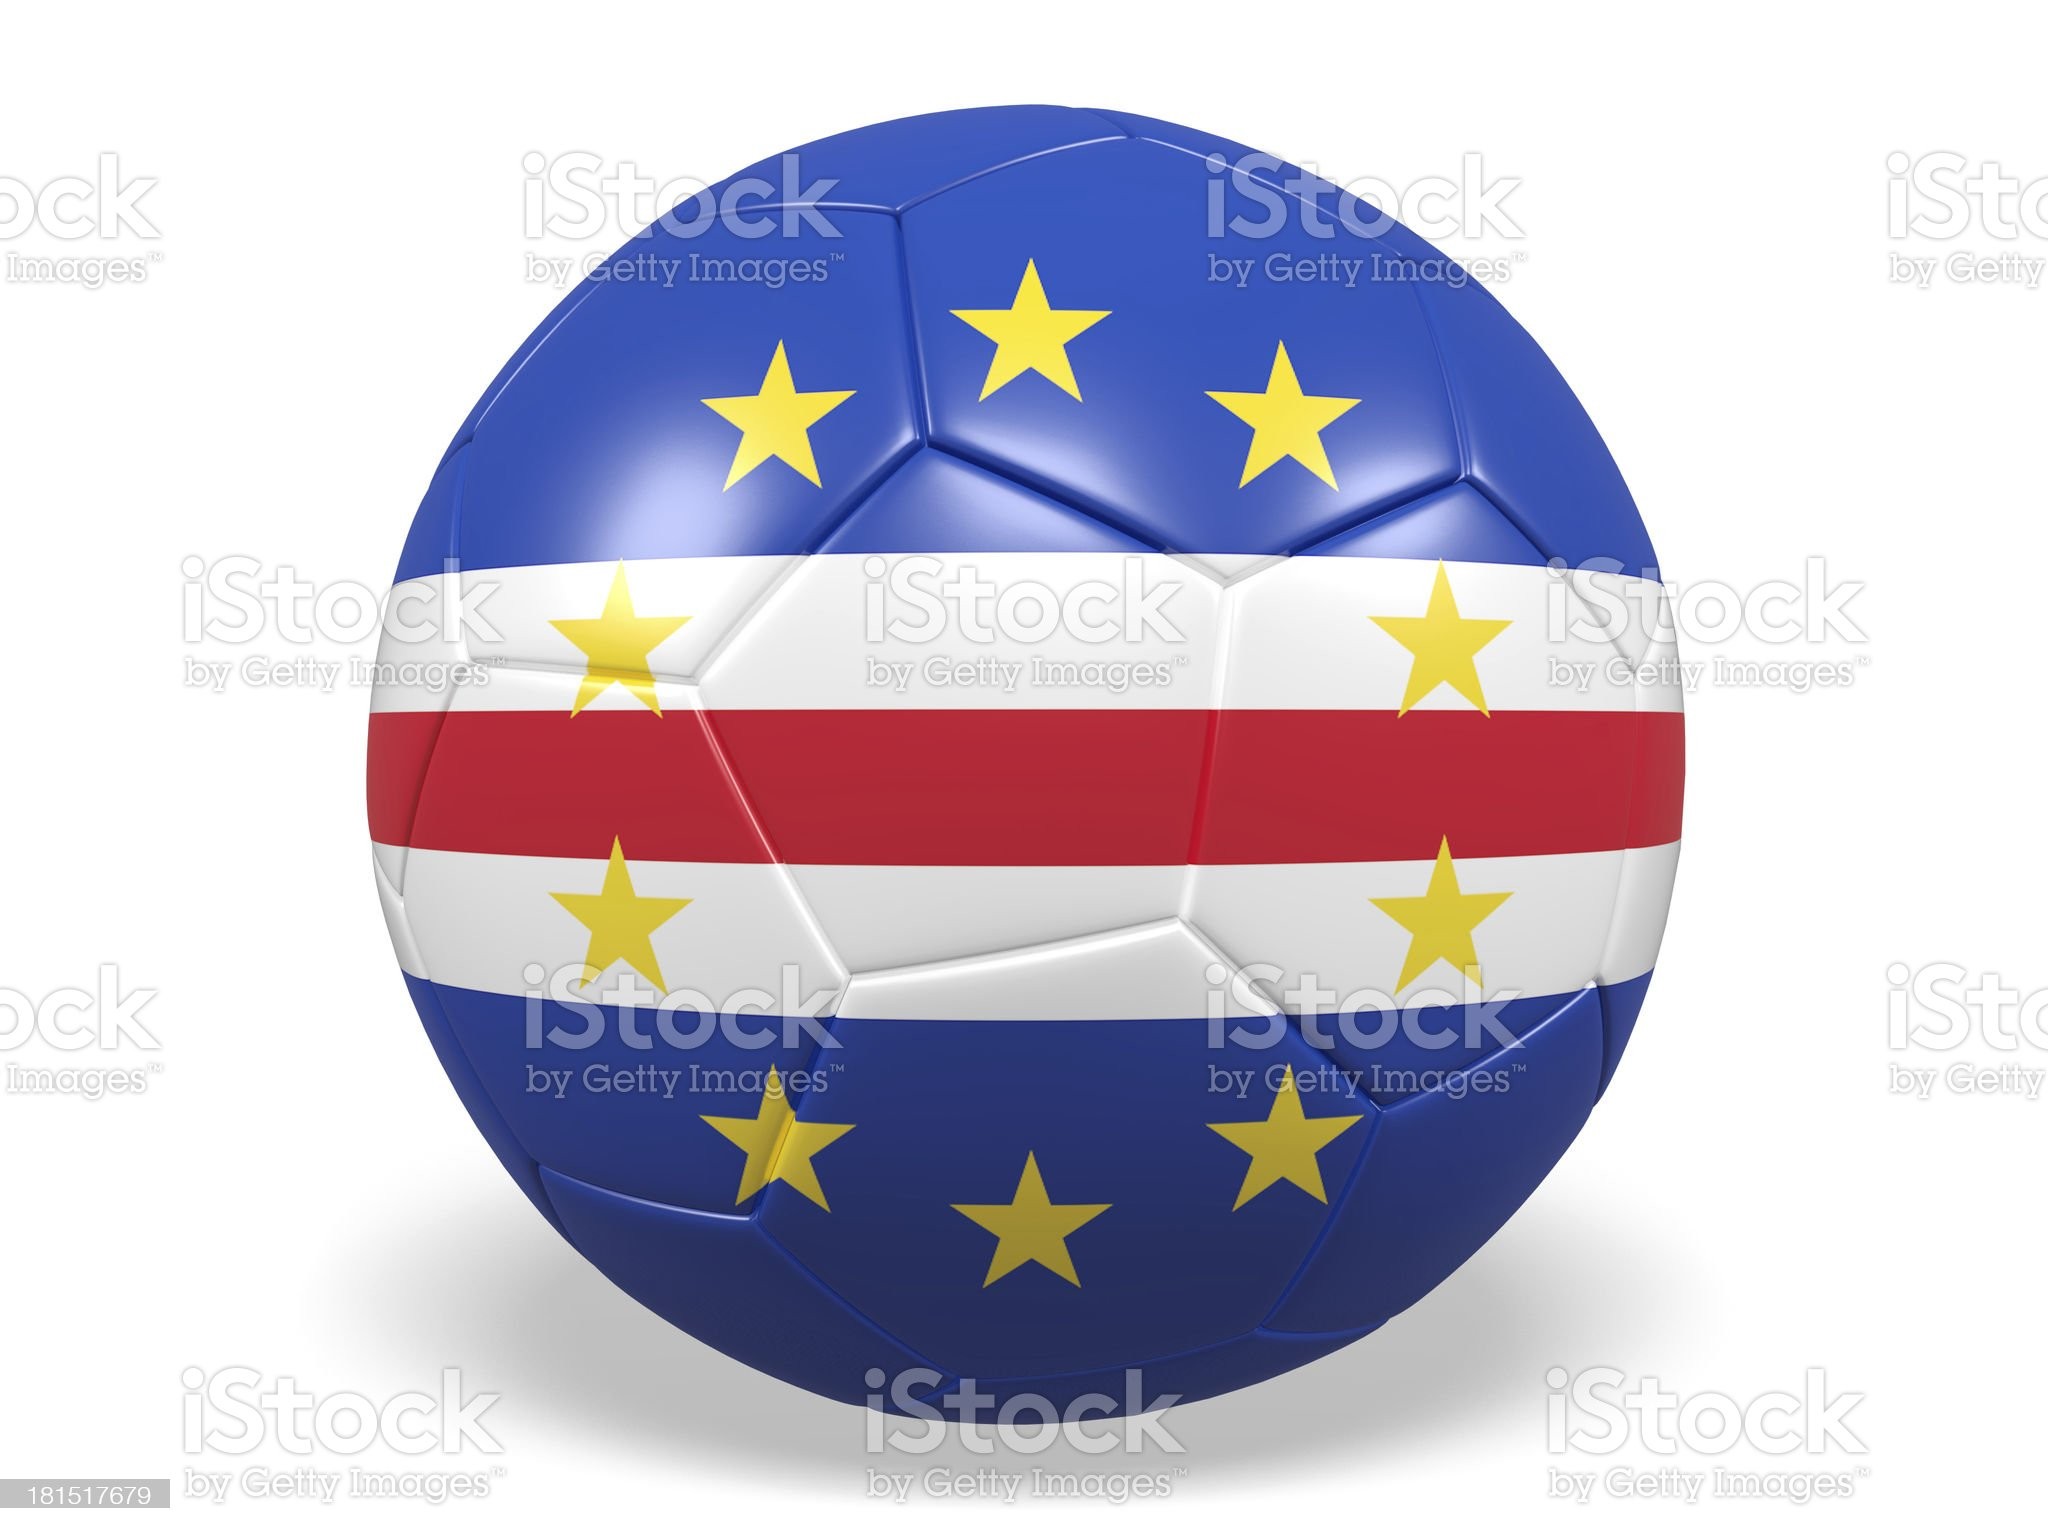 Football/soccer ball with a Cape Verde flag. royalty-free stock photo